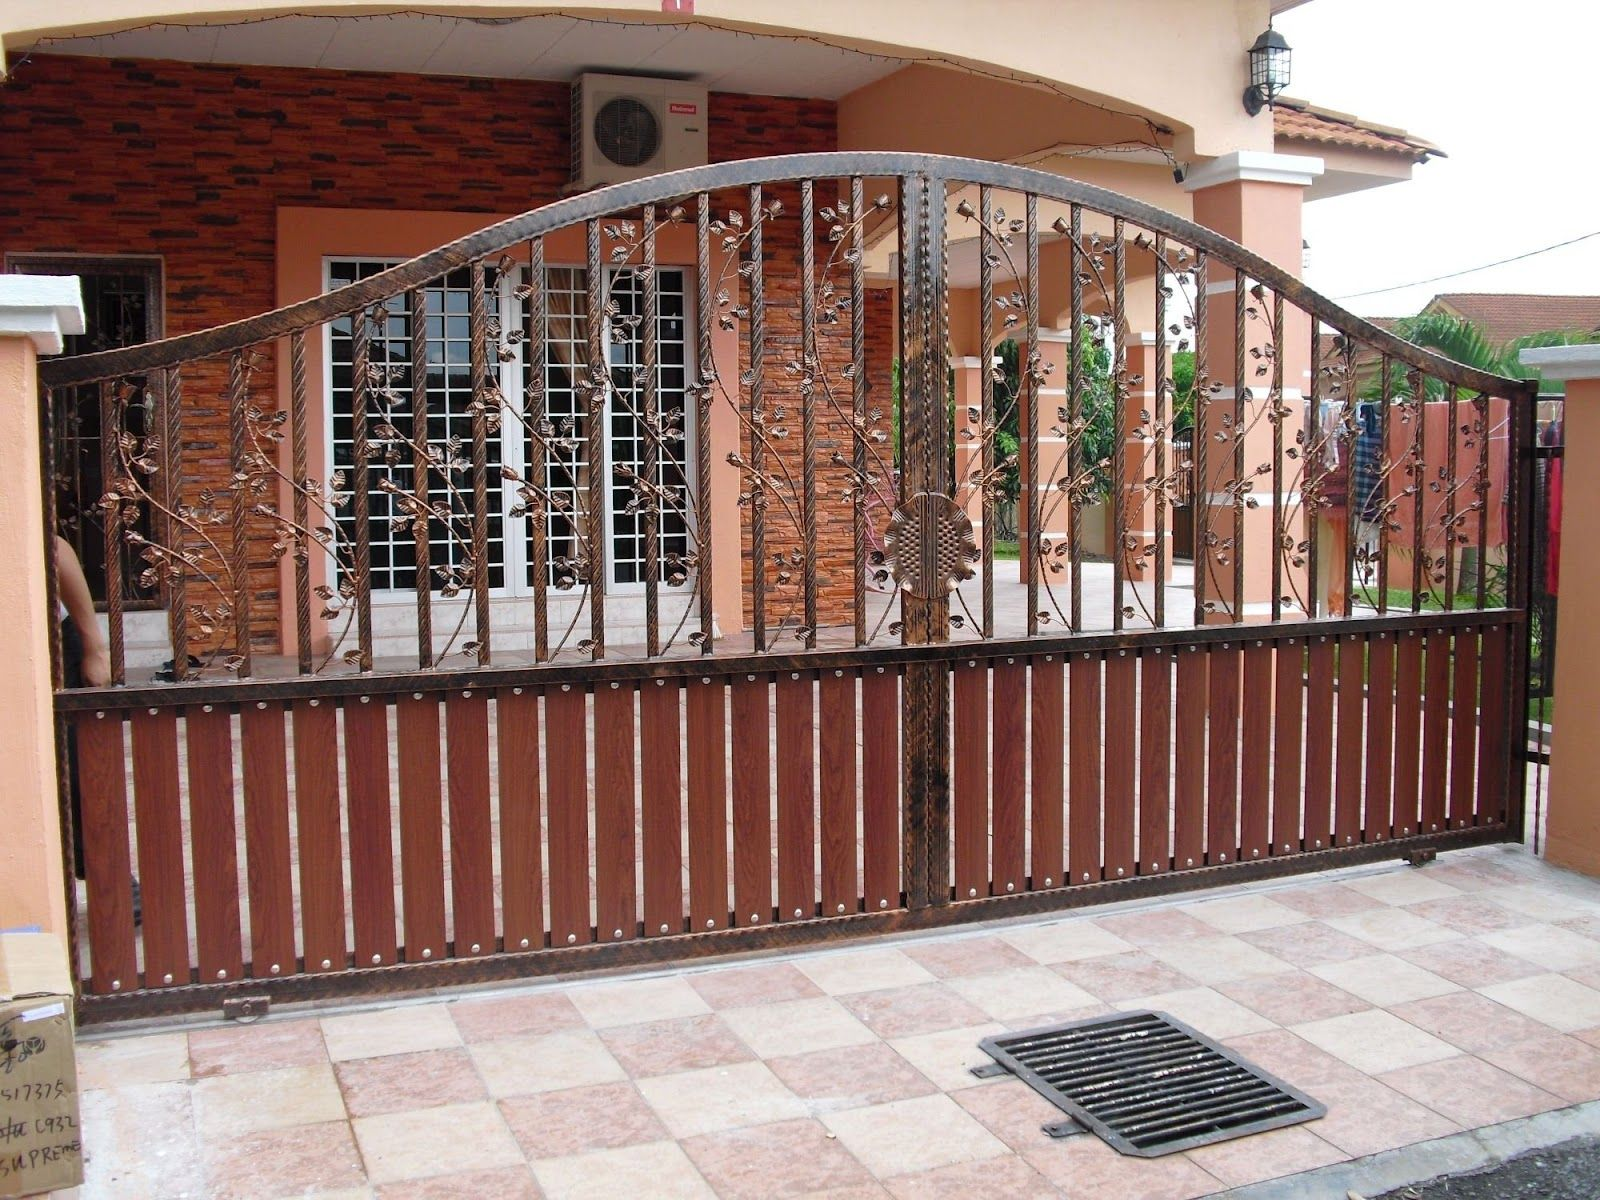 Western Metal Gate Entrances House Gate Designs